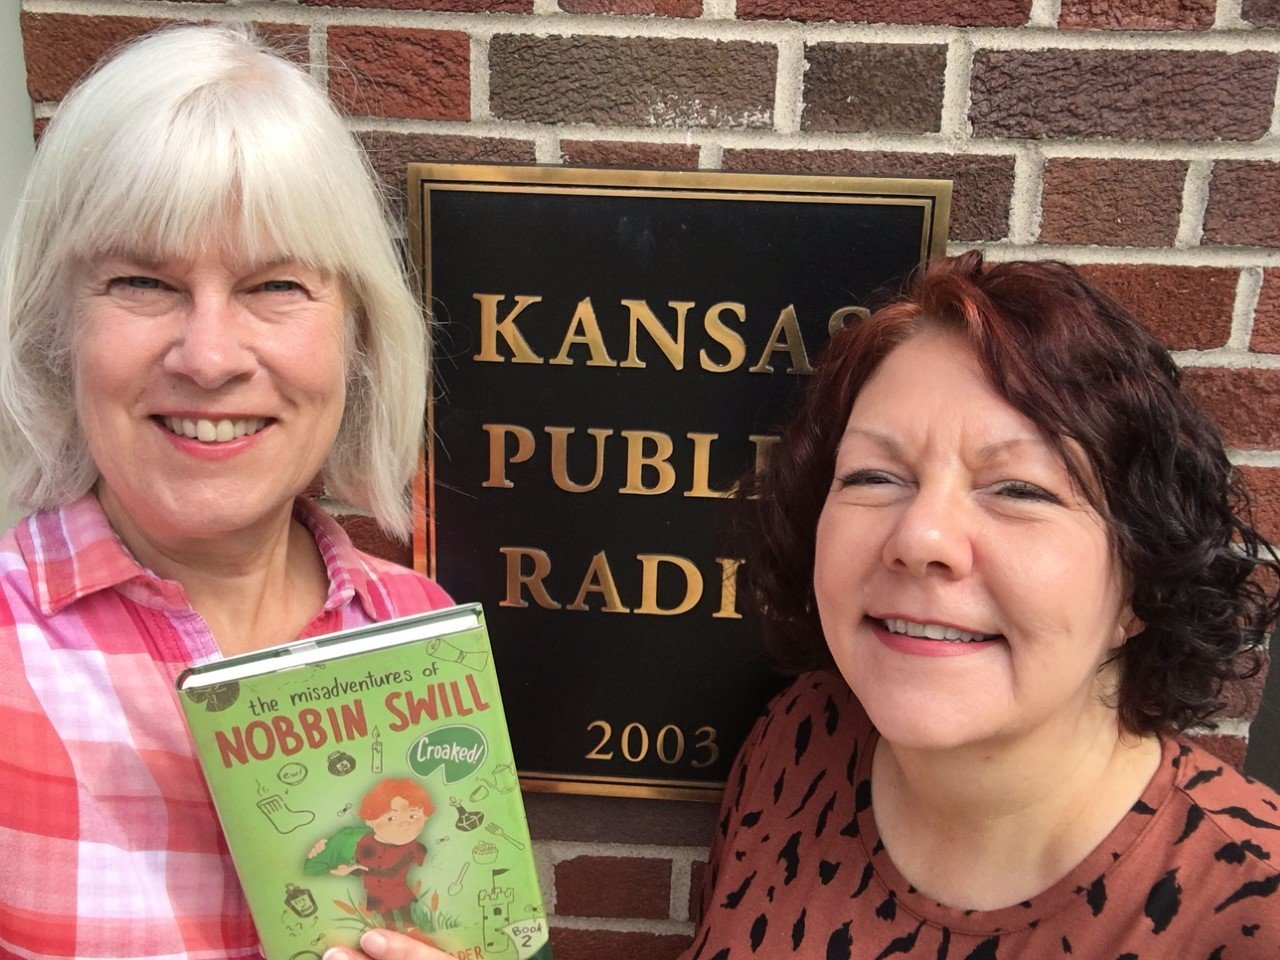 Photo of Kaye McIntyre and Lisa Harkrader holding copy of book, KPR sign in background